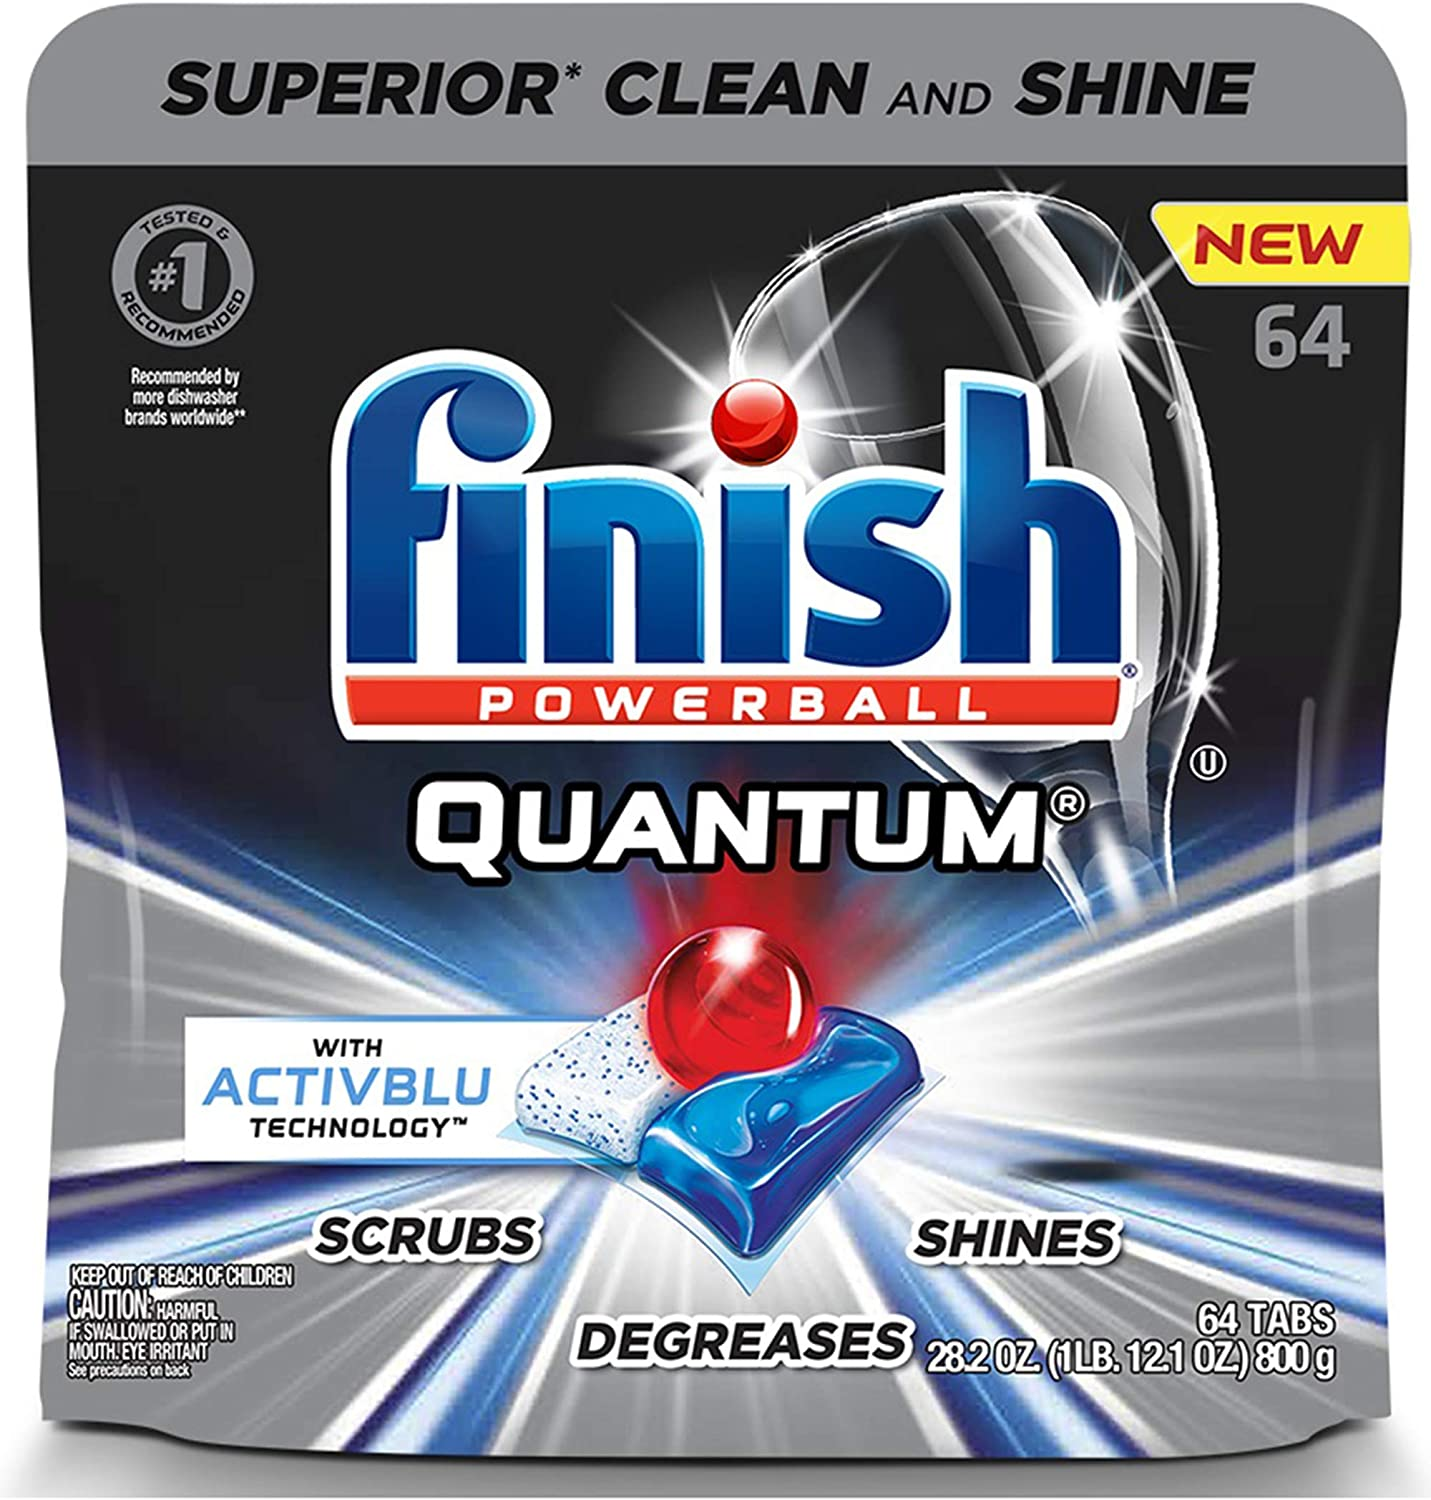 Finish - Quantum with Activblu Technology - 64ct - Dishwasher Detergent - Powerball - Ultimate Clean and Shine - Dishwashing Tablets - Dish Tabs